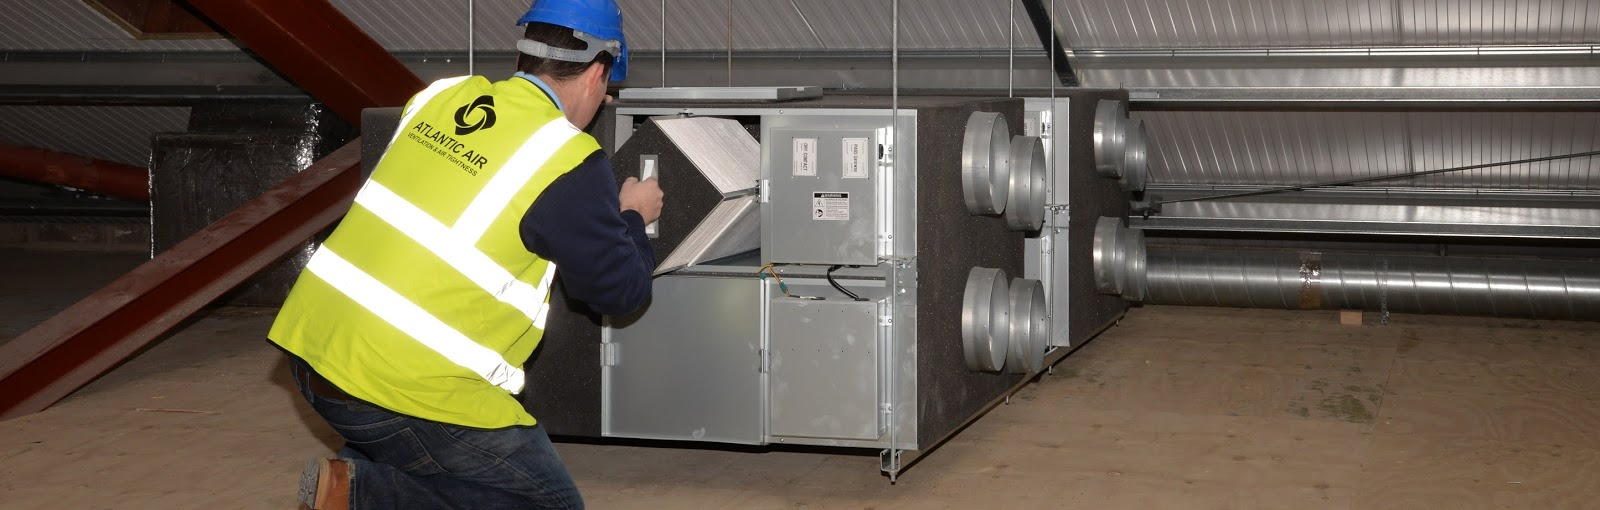 Heat recovery unit | Commercial Vacuum Systems